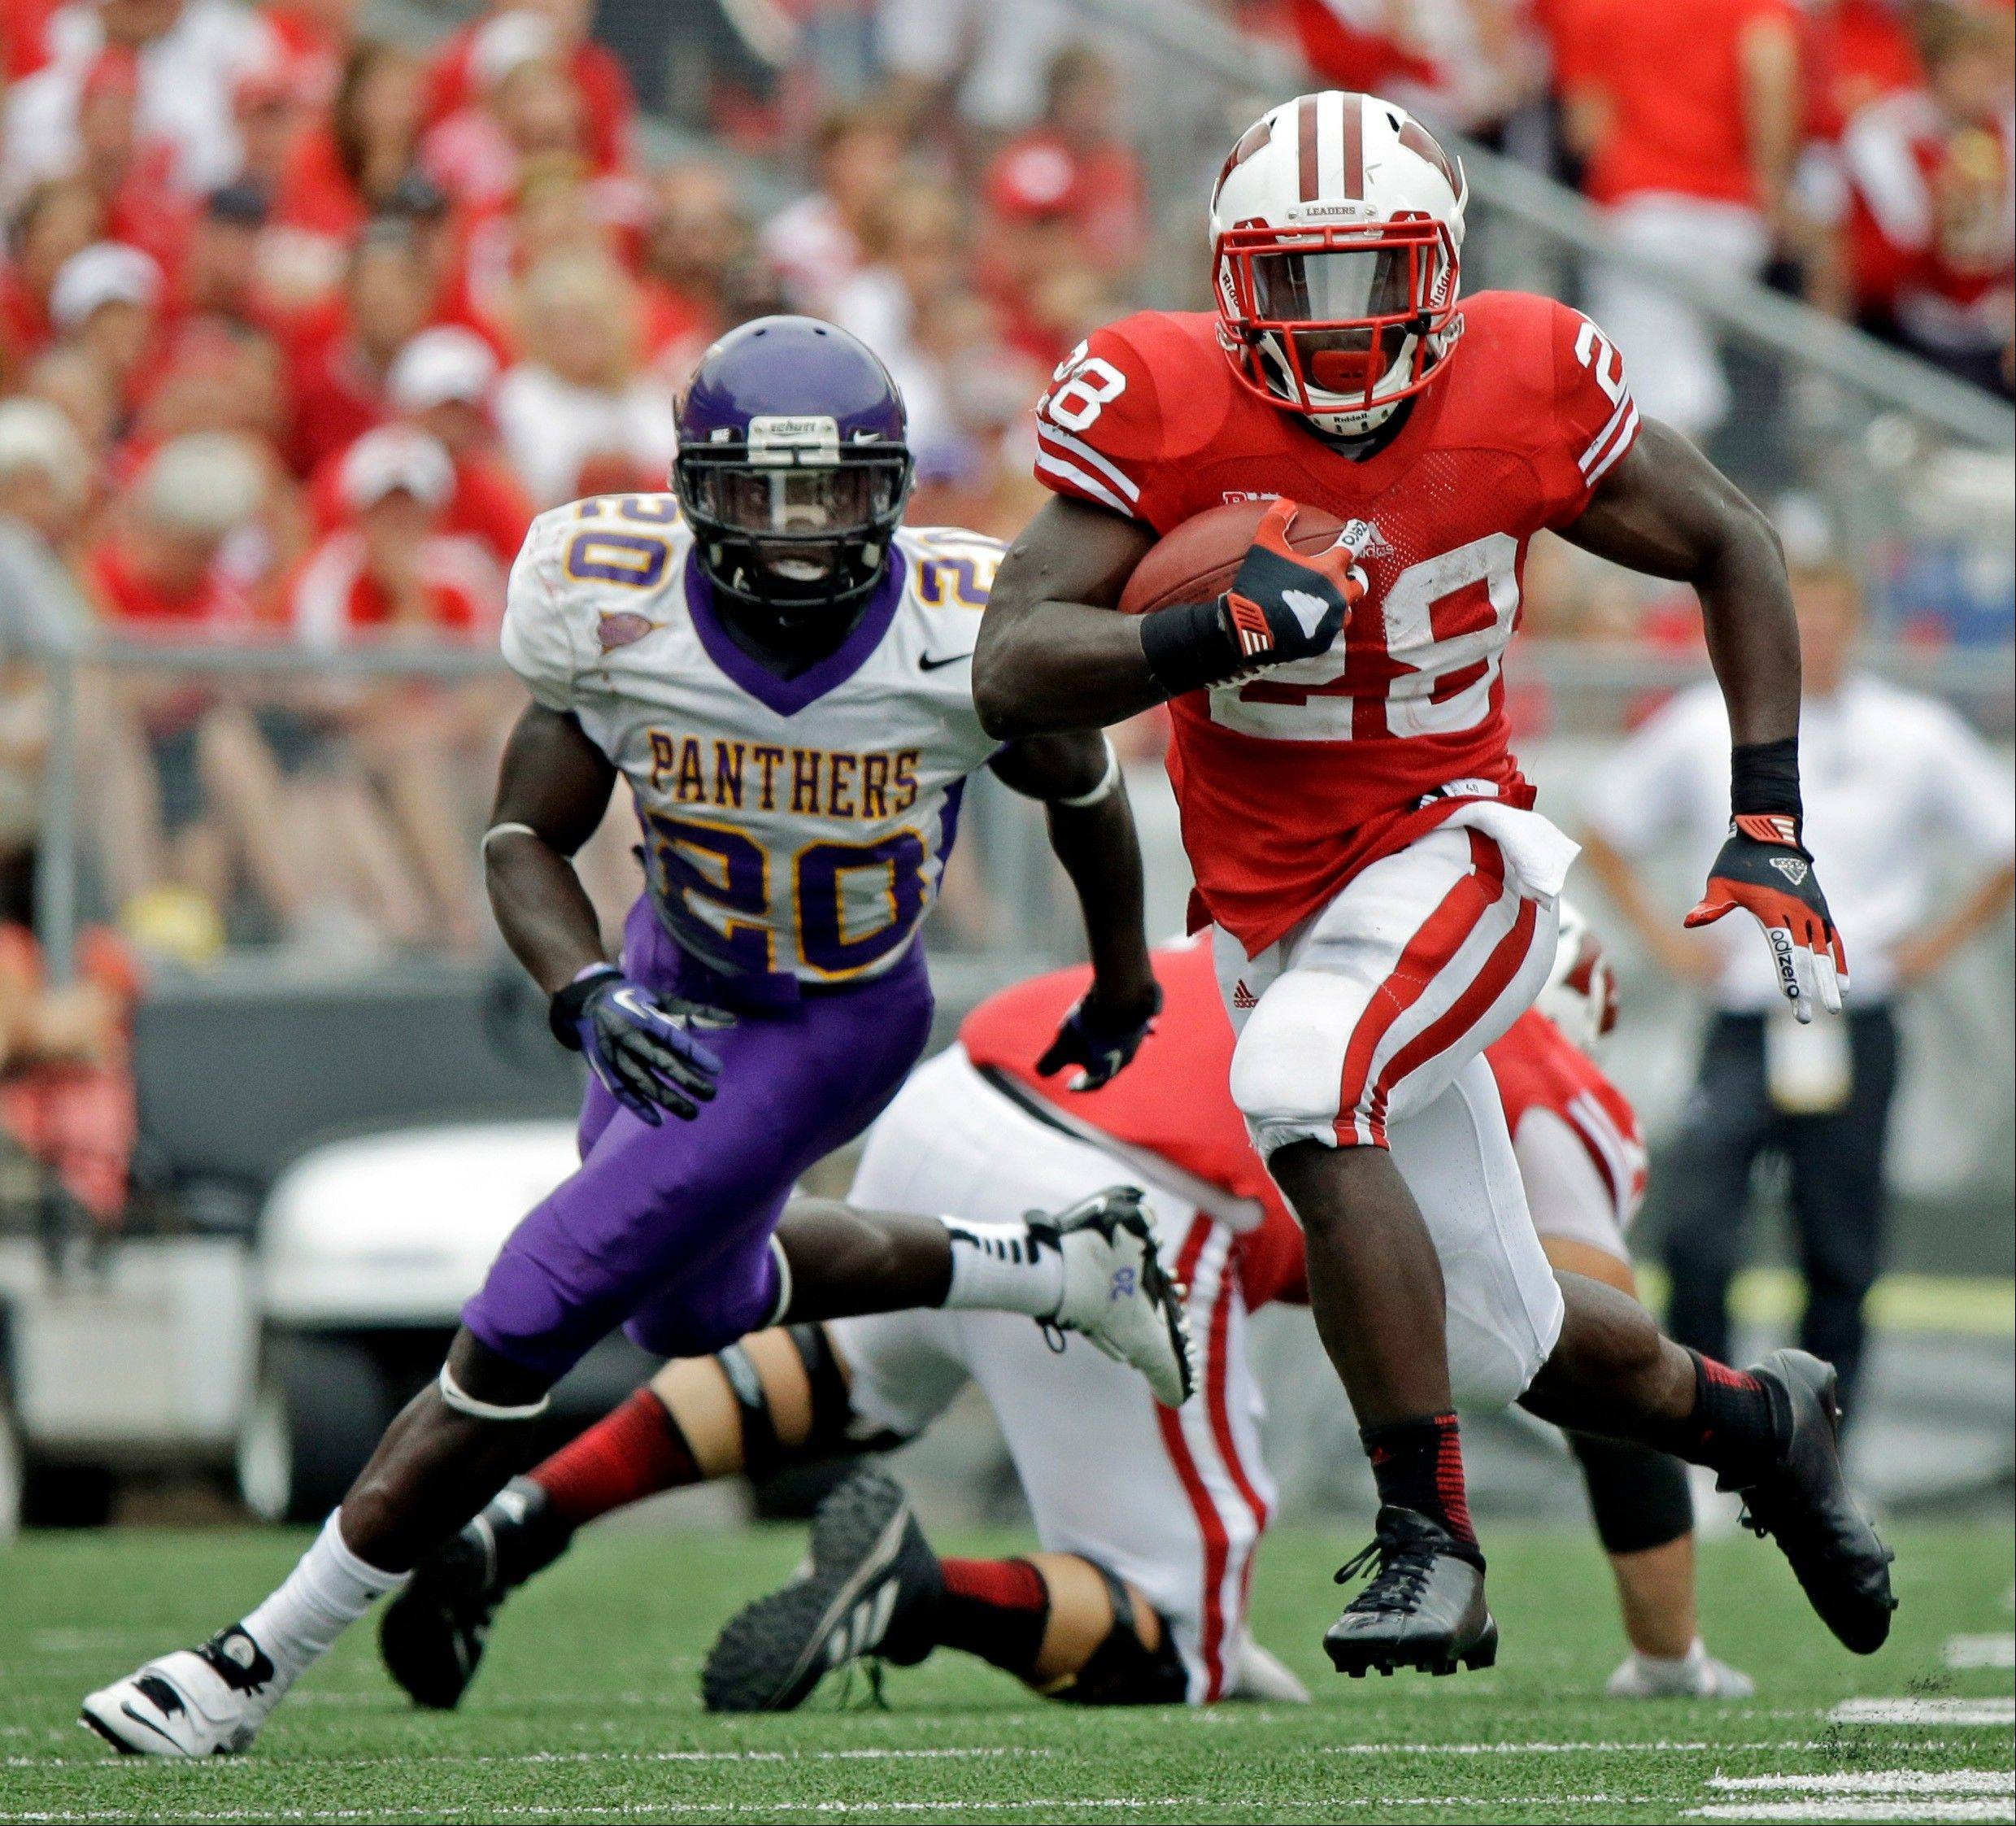 Wisconsin�s Montee Ball breaks away from Northern Iowa�s Wilmot Wellington for a 16-yard pass reception during the second half last Saturday in Madison.